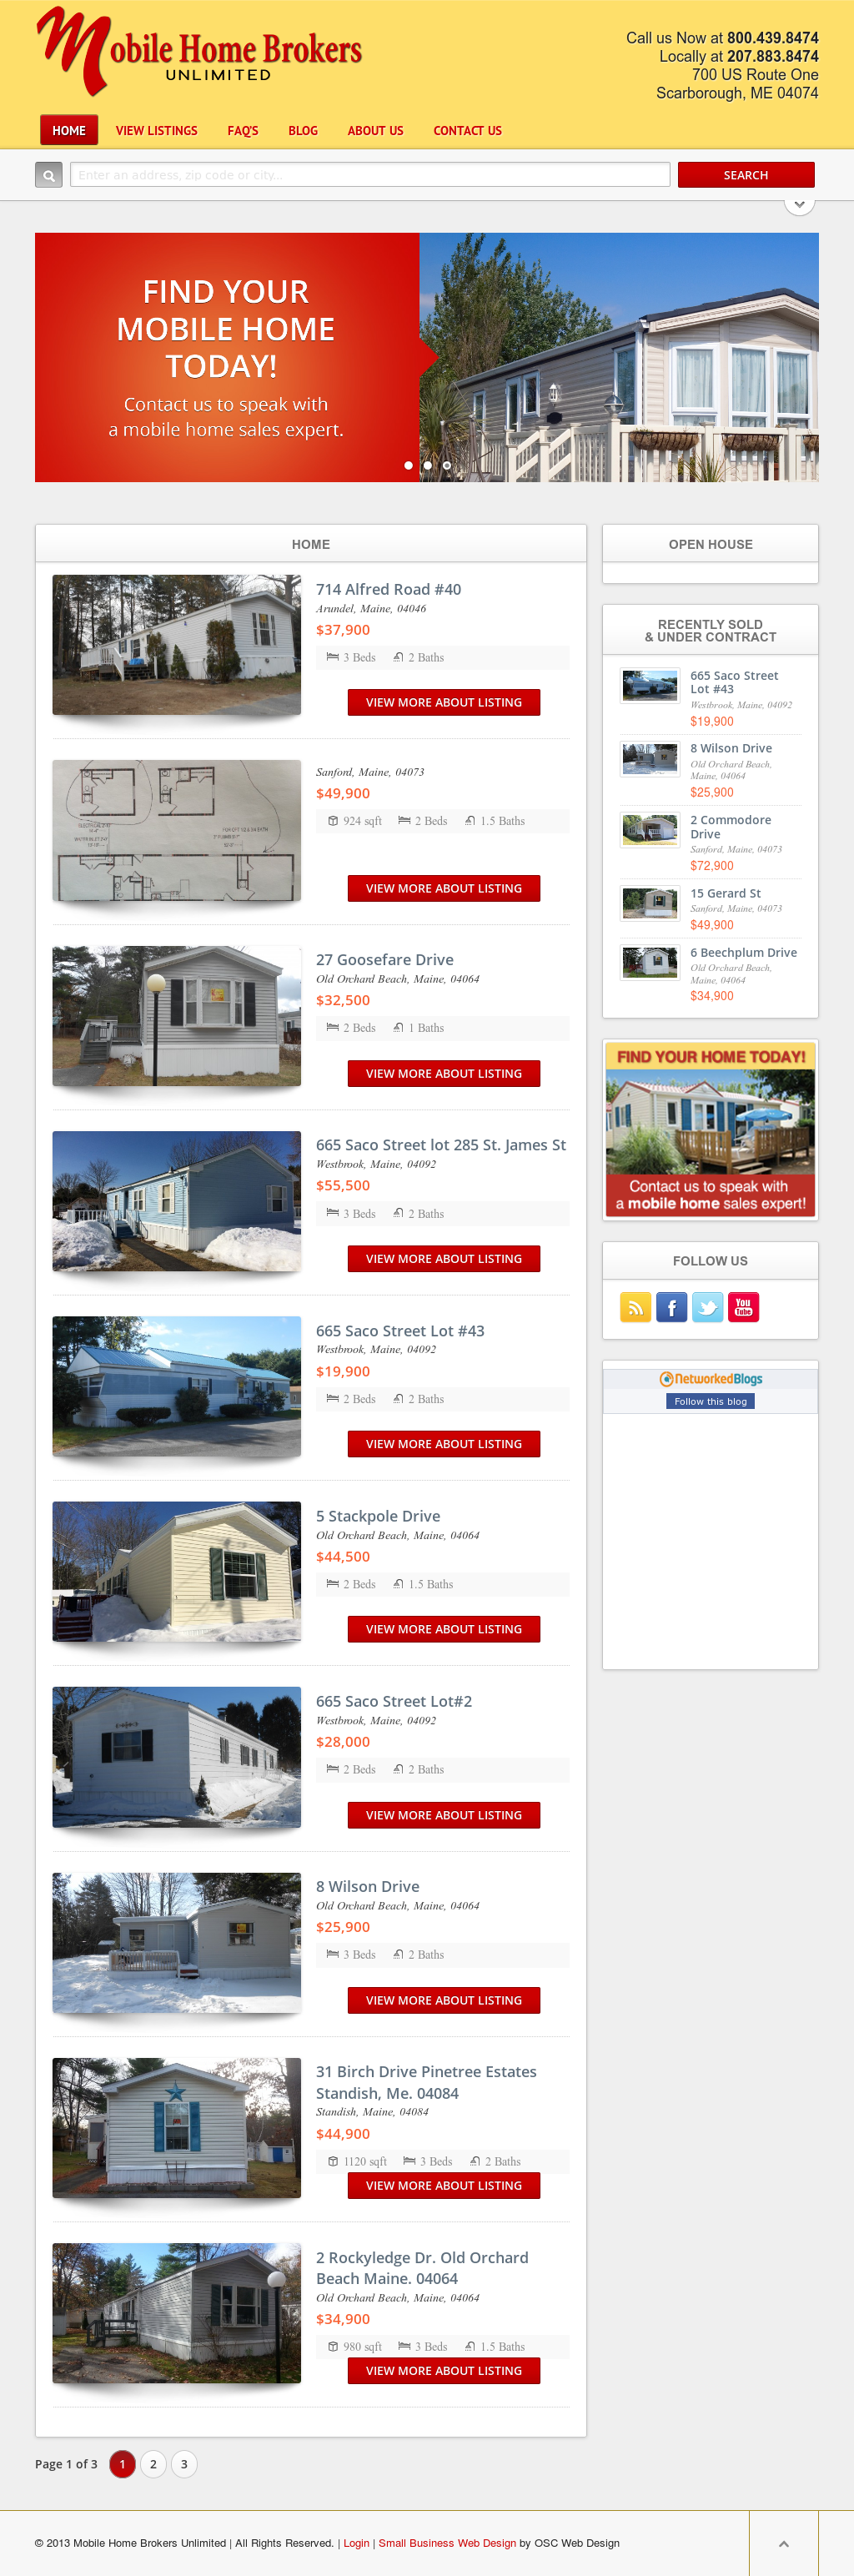 Astounding Mobilehomebroker Competitors Revenue And Employees Owler Download Free Architecture Designs Scobabritishbridgeorg